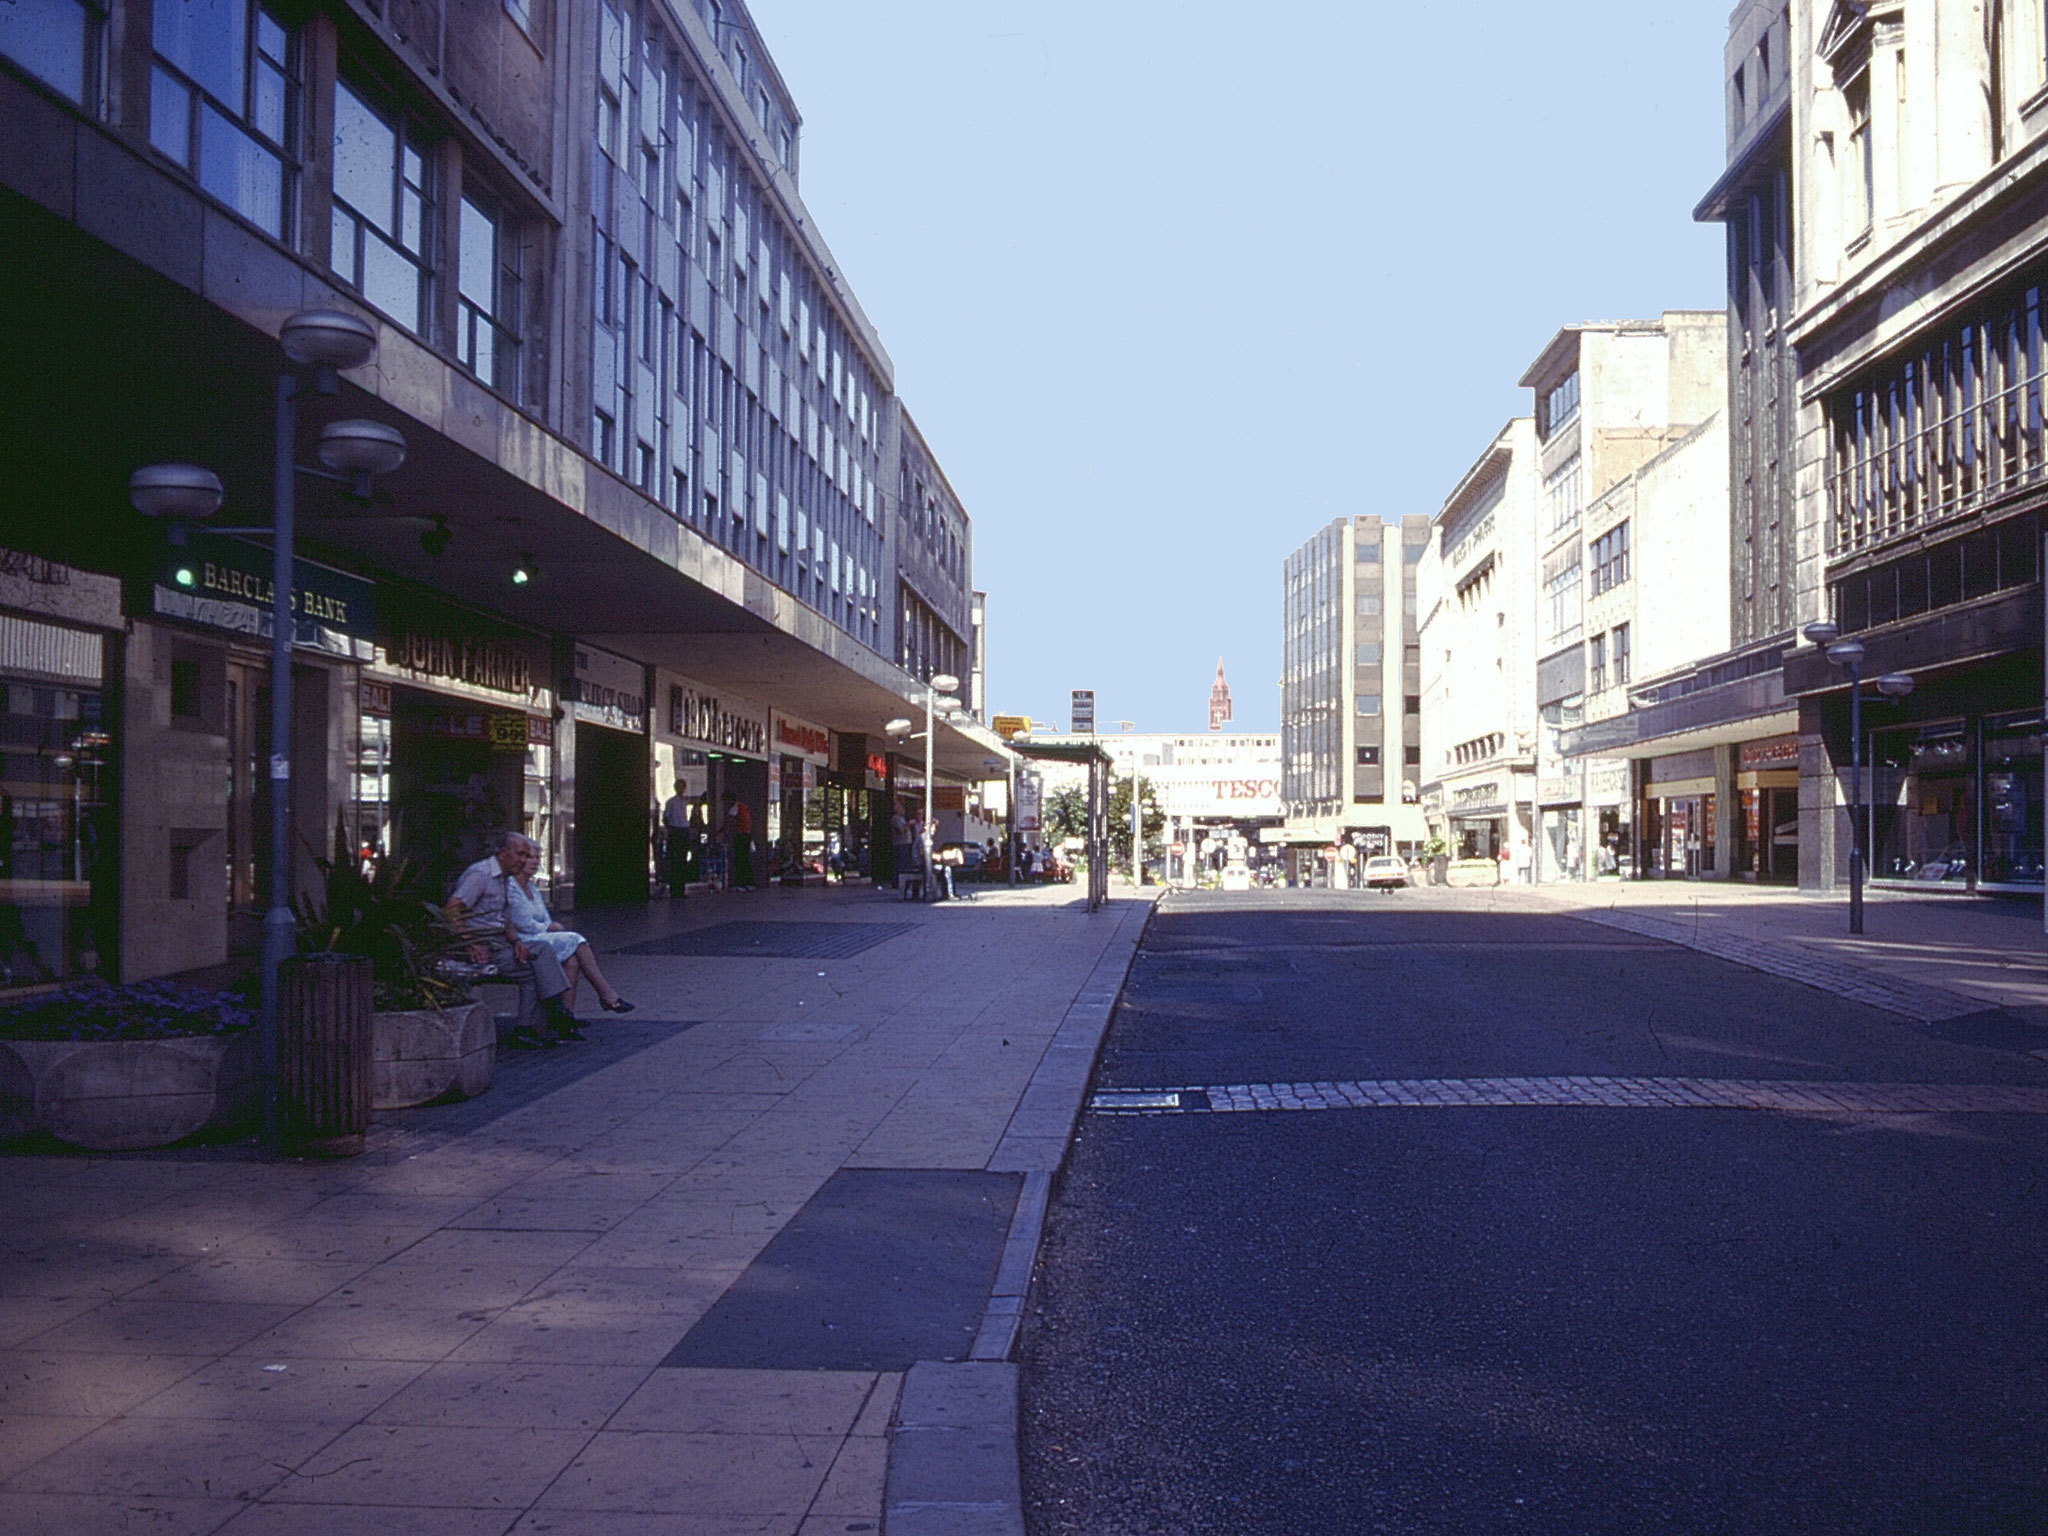 Birmingham in the '80s, Hill Street